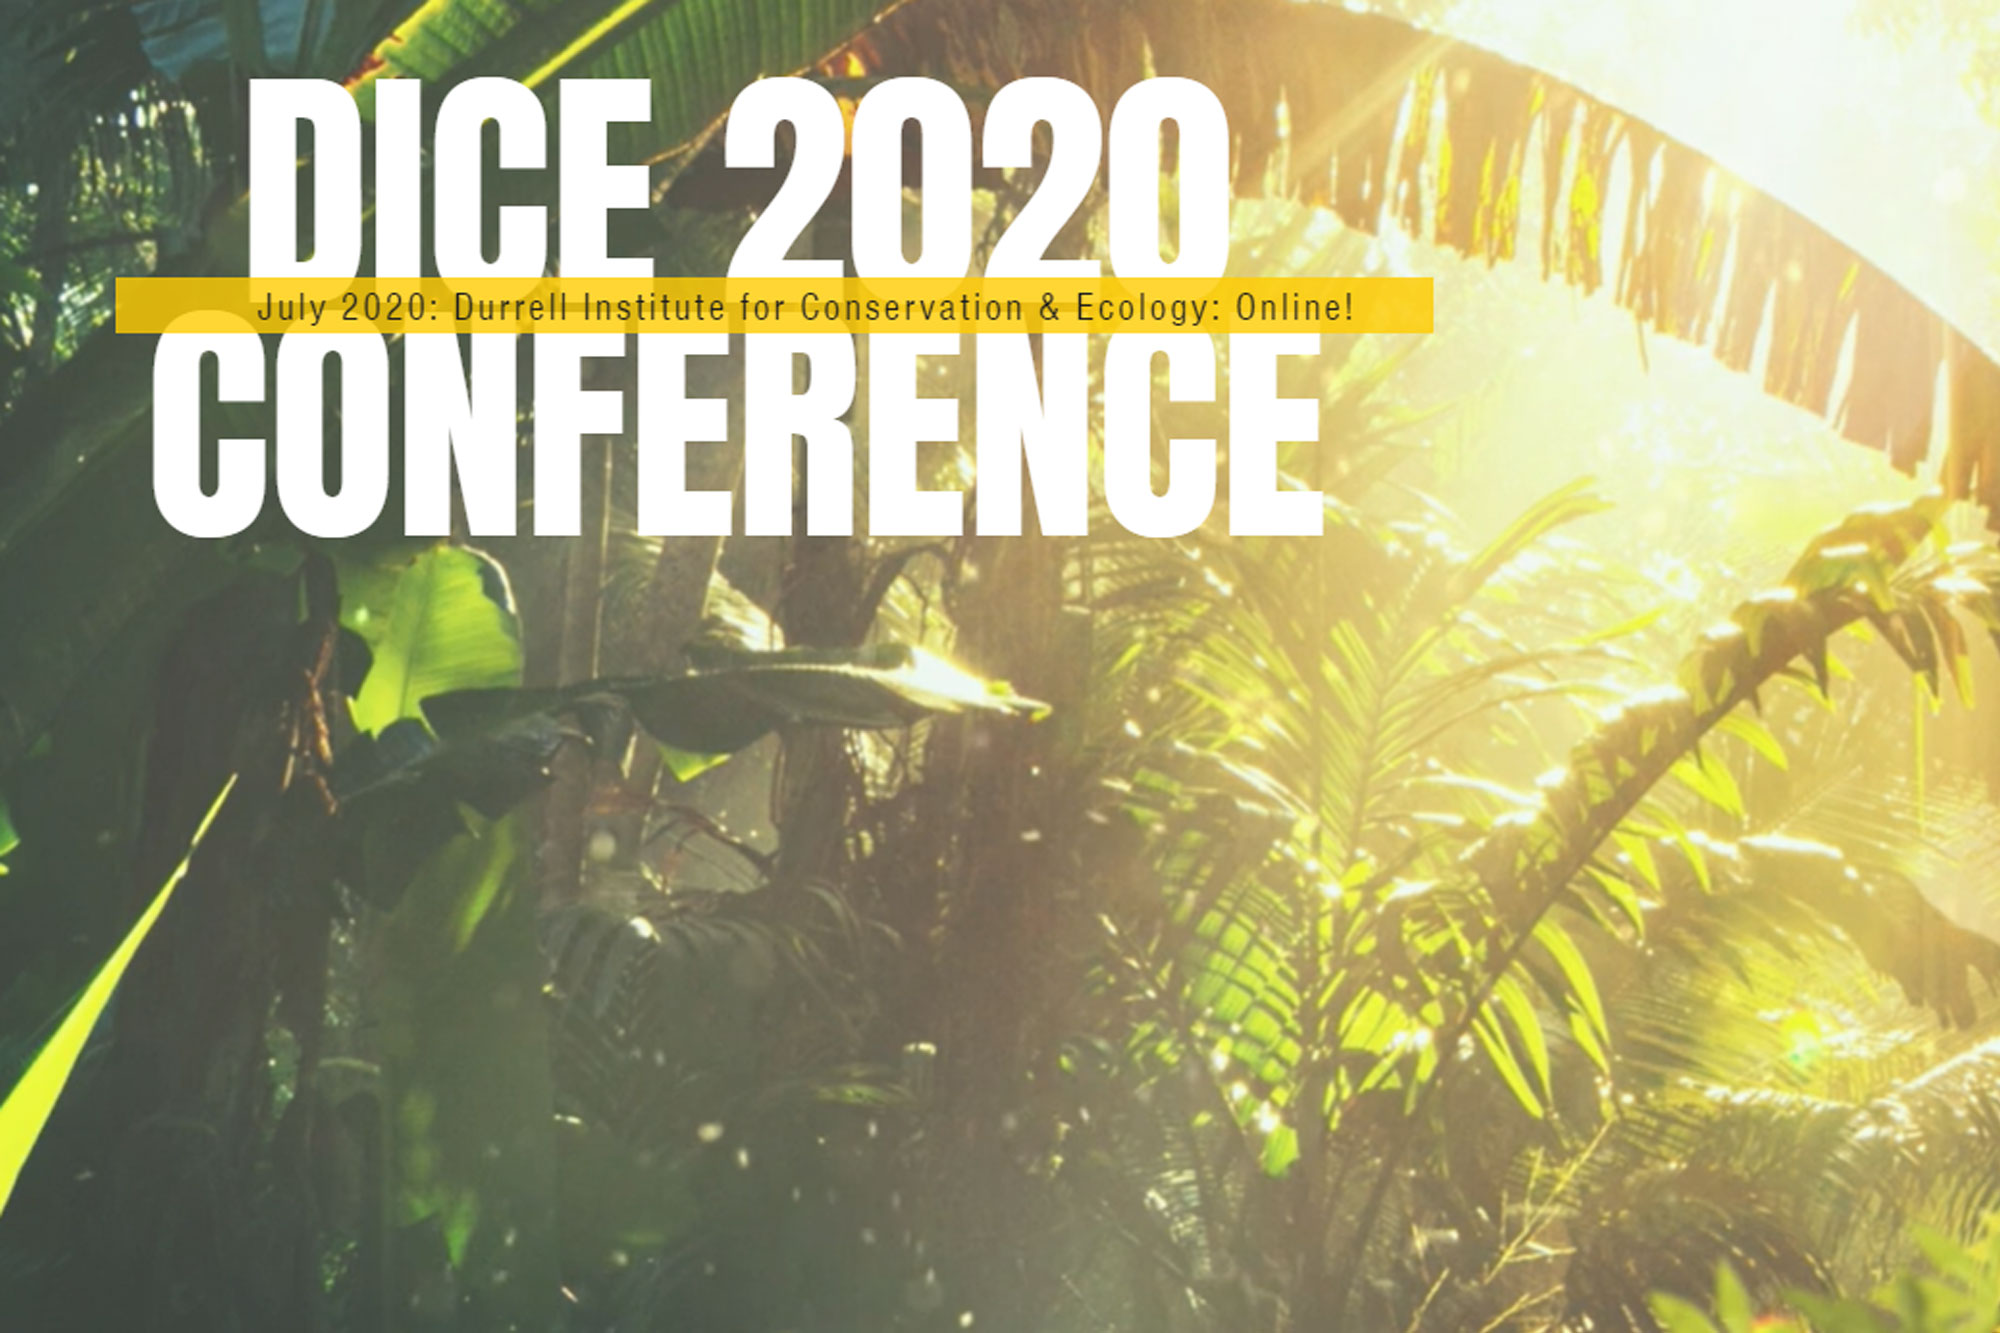 DICE Conference 2020 banner with background image of sunlight streaming through tropical forest canopy